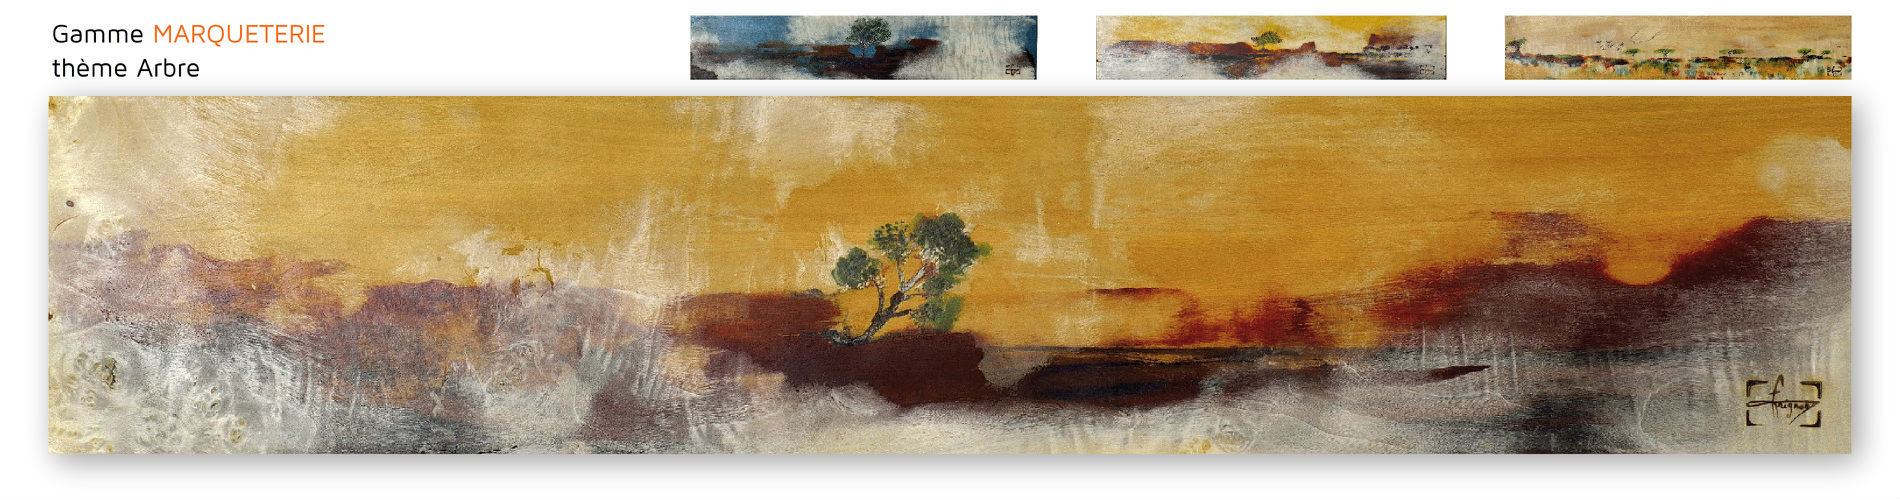 door art collection decor amovible gamme marqueterie arbre